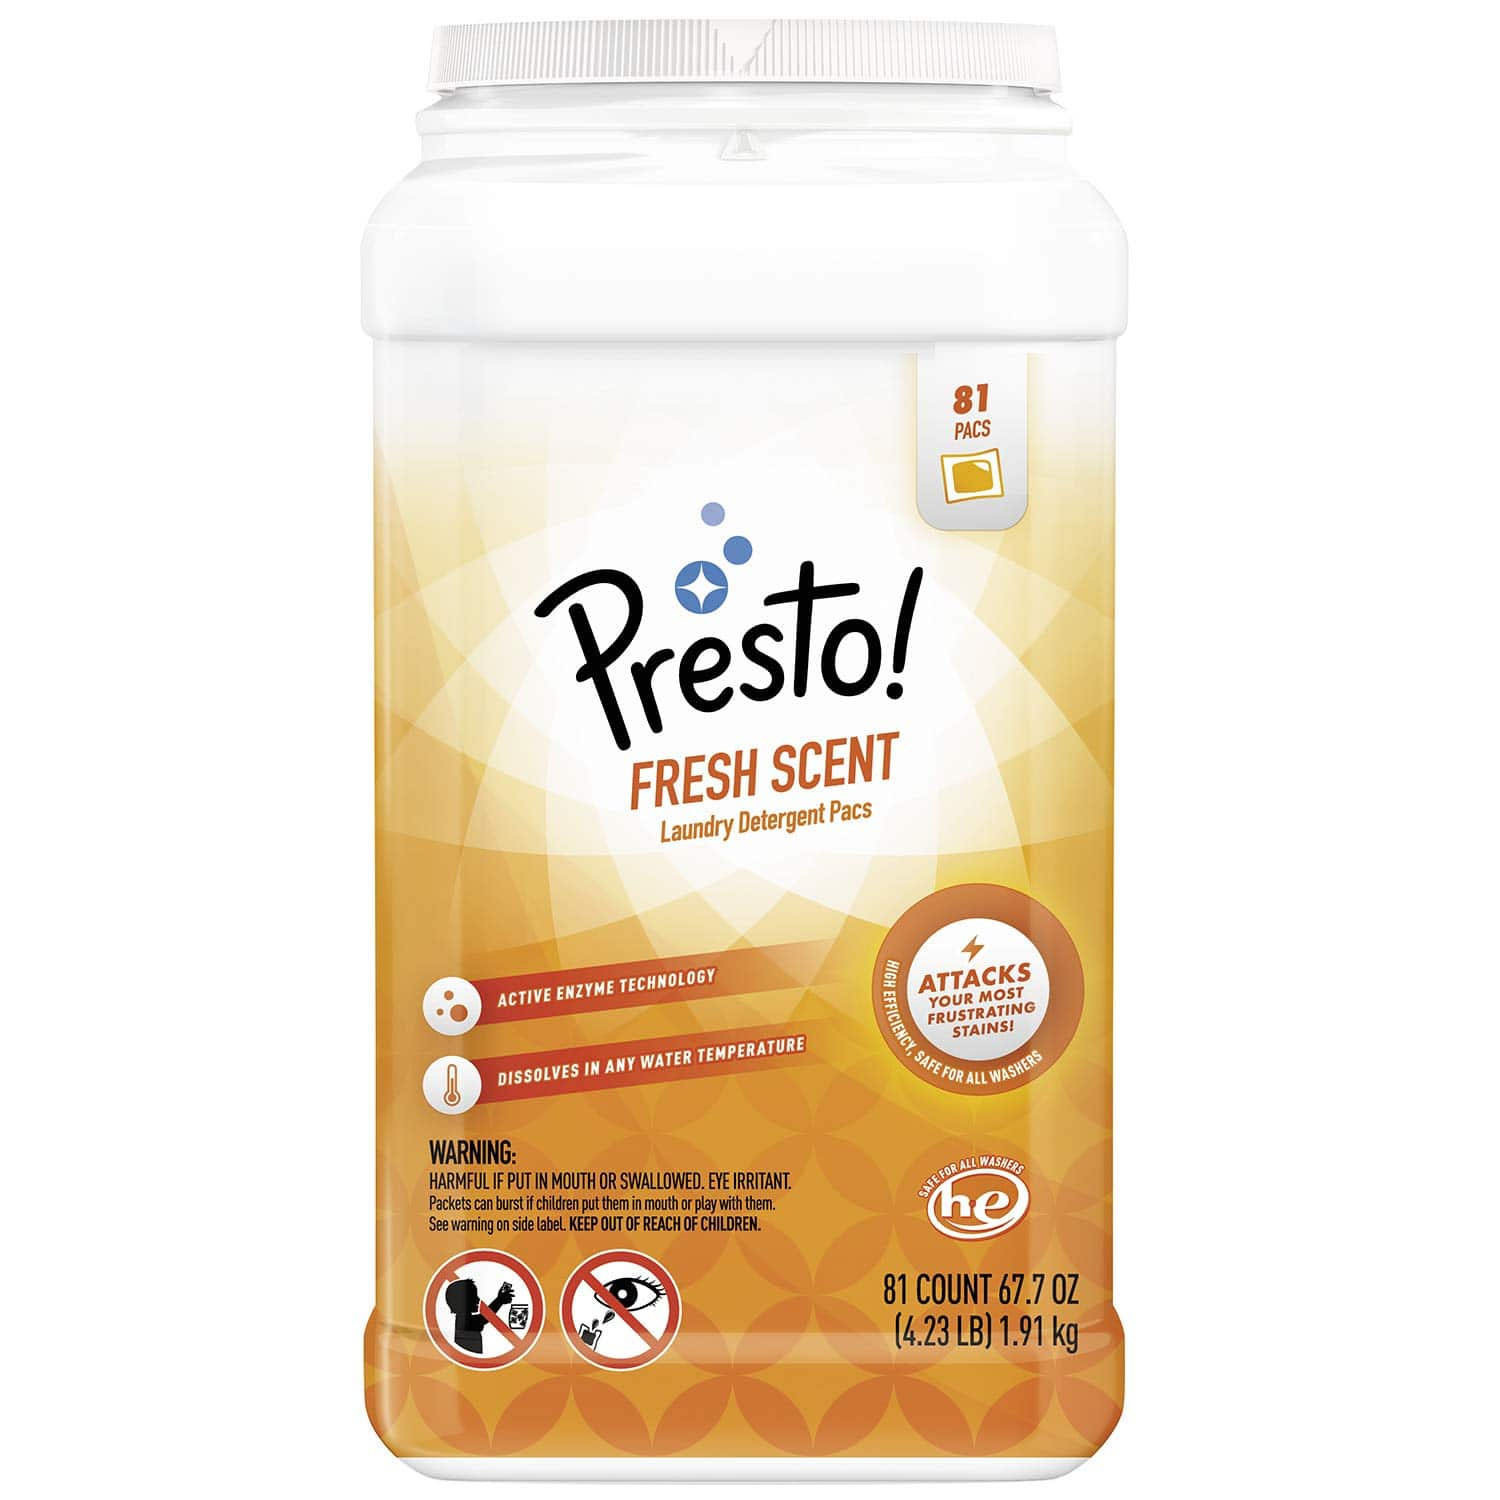 Amazon Brand - Presto! Laundry Detergent Pacs, Fresh Scent, 81 Count 5% s&s $8.24 15% s&s $7.38